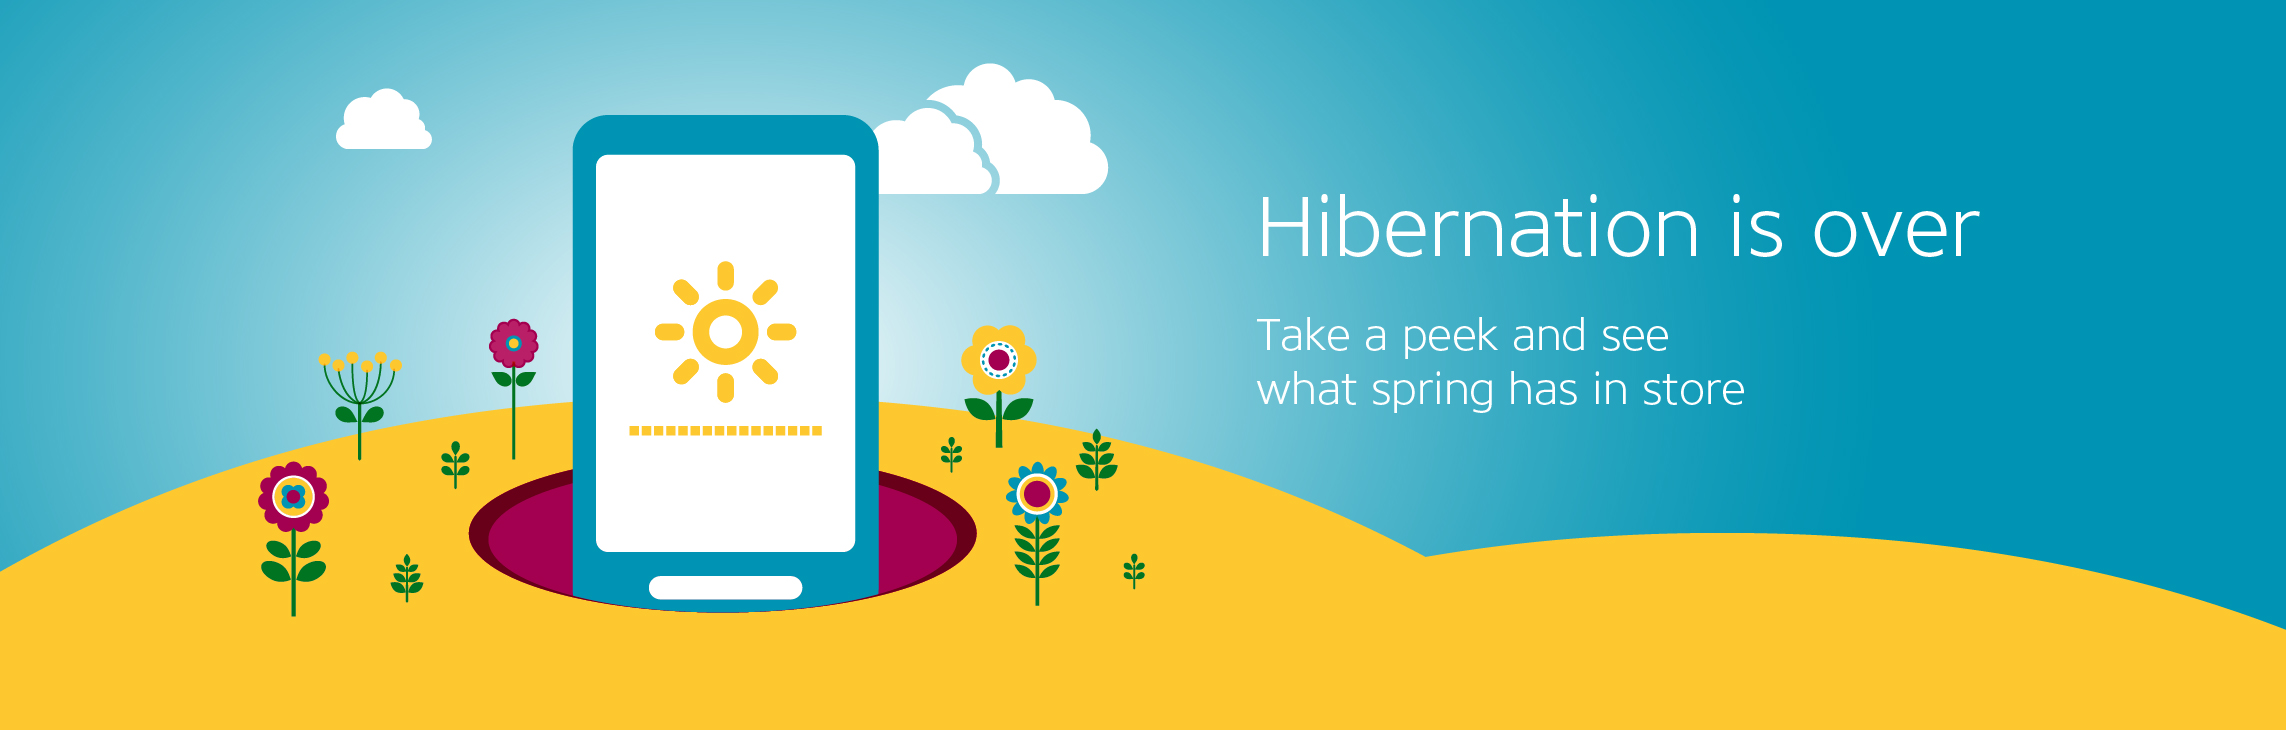 Hibernation is over. Take a peek and see what spring has in store.